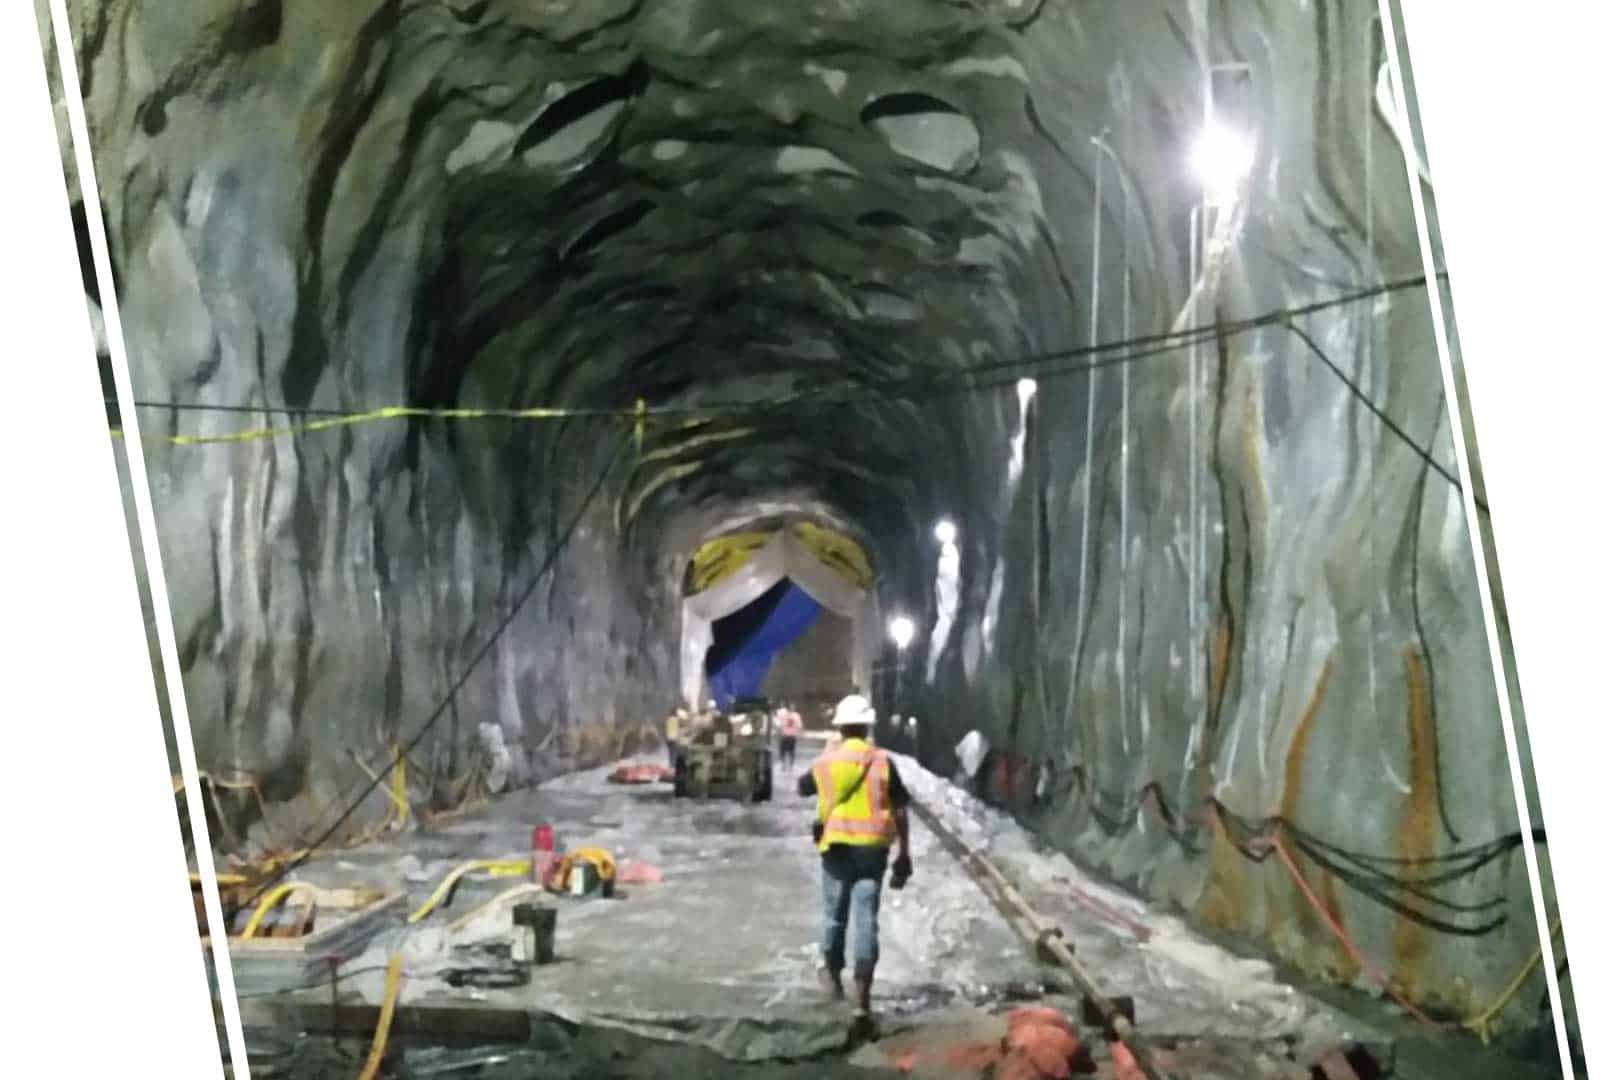 A long underground tunnel with a worker walking down it